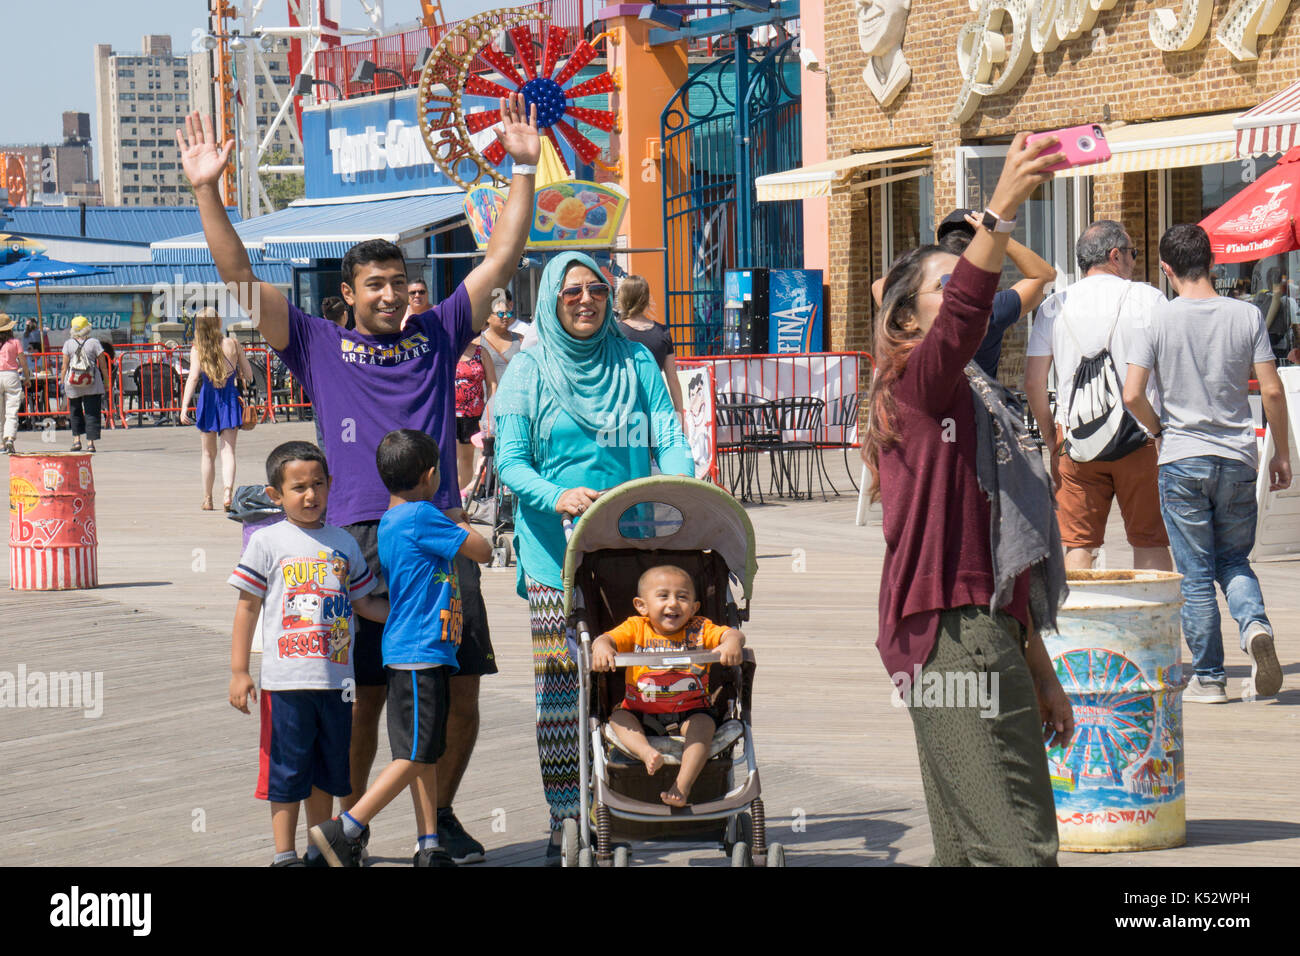 A Muslim family taking a selfie on the boardwalk in Consy Island, Brooklyn, New York City. - Stock Image